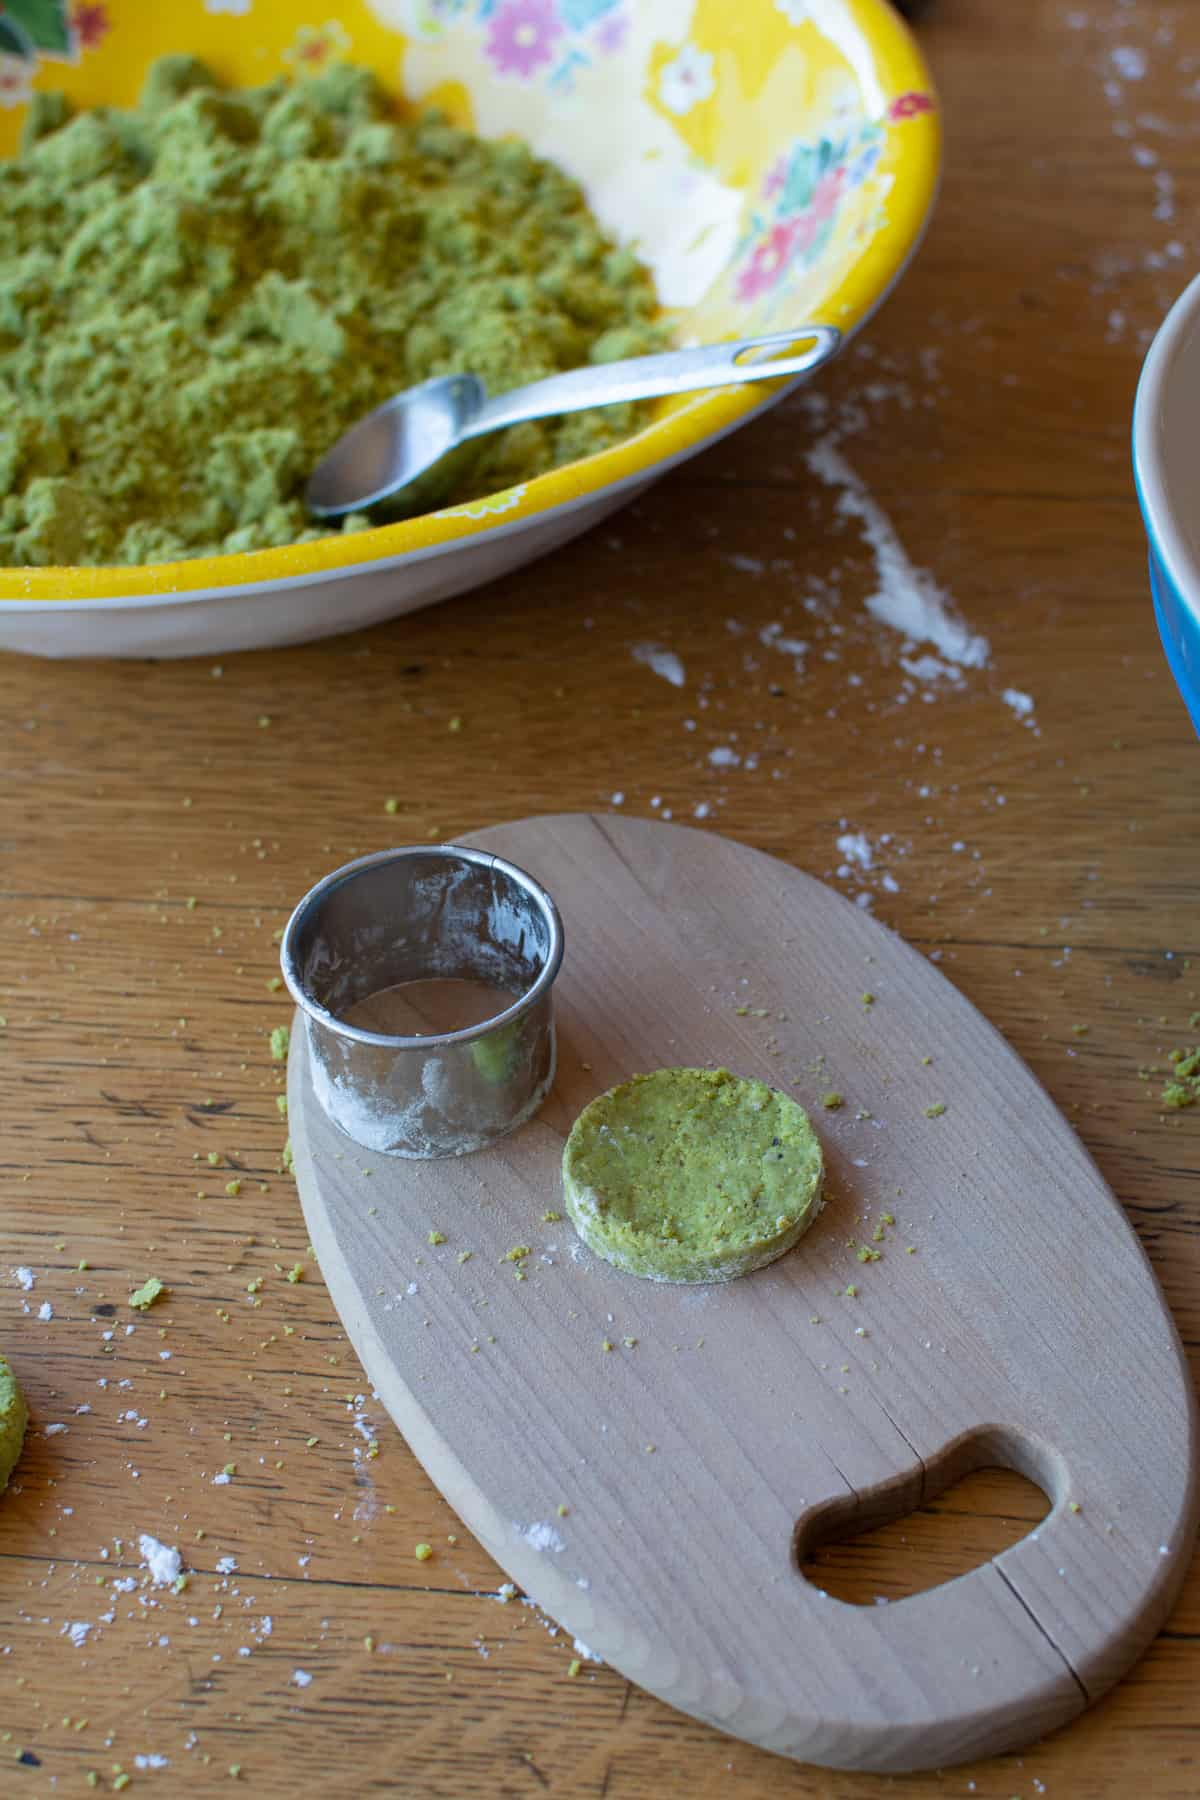 Pistachio mazapan after being formed into a round shape with a biscuit cutter sitting to one side on a small wood cutting board.